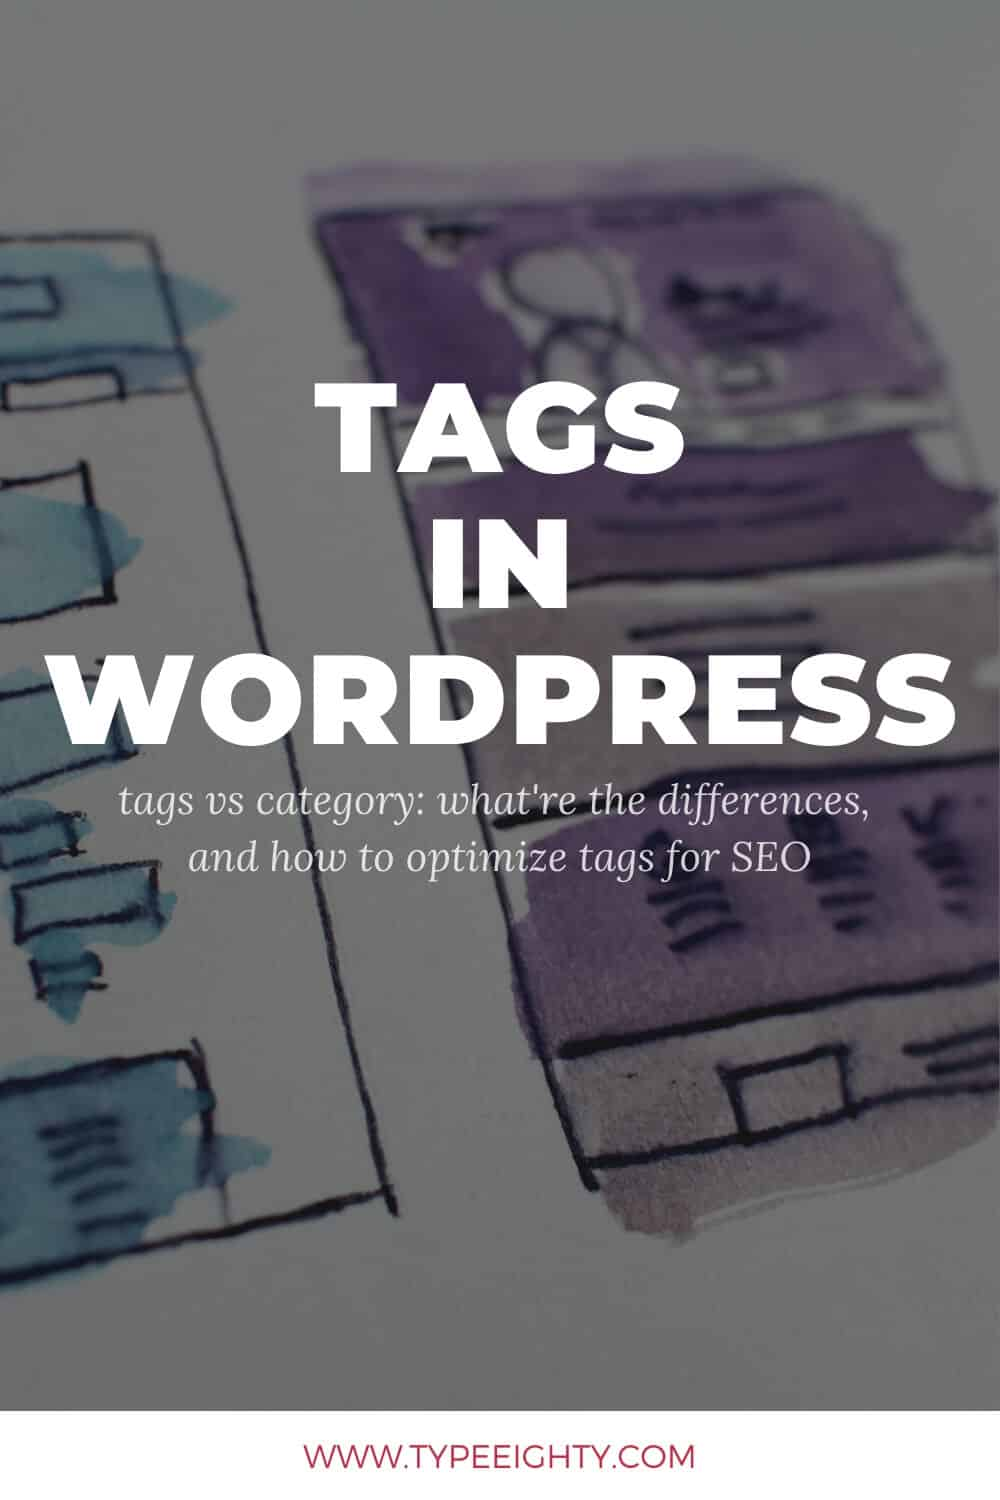 What Are Tags In WordPress?